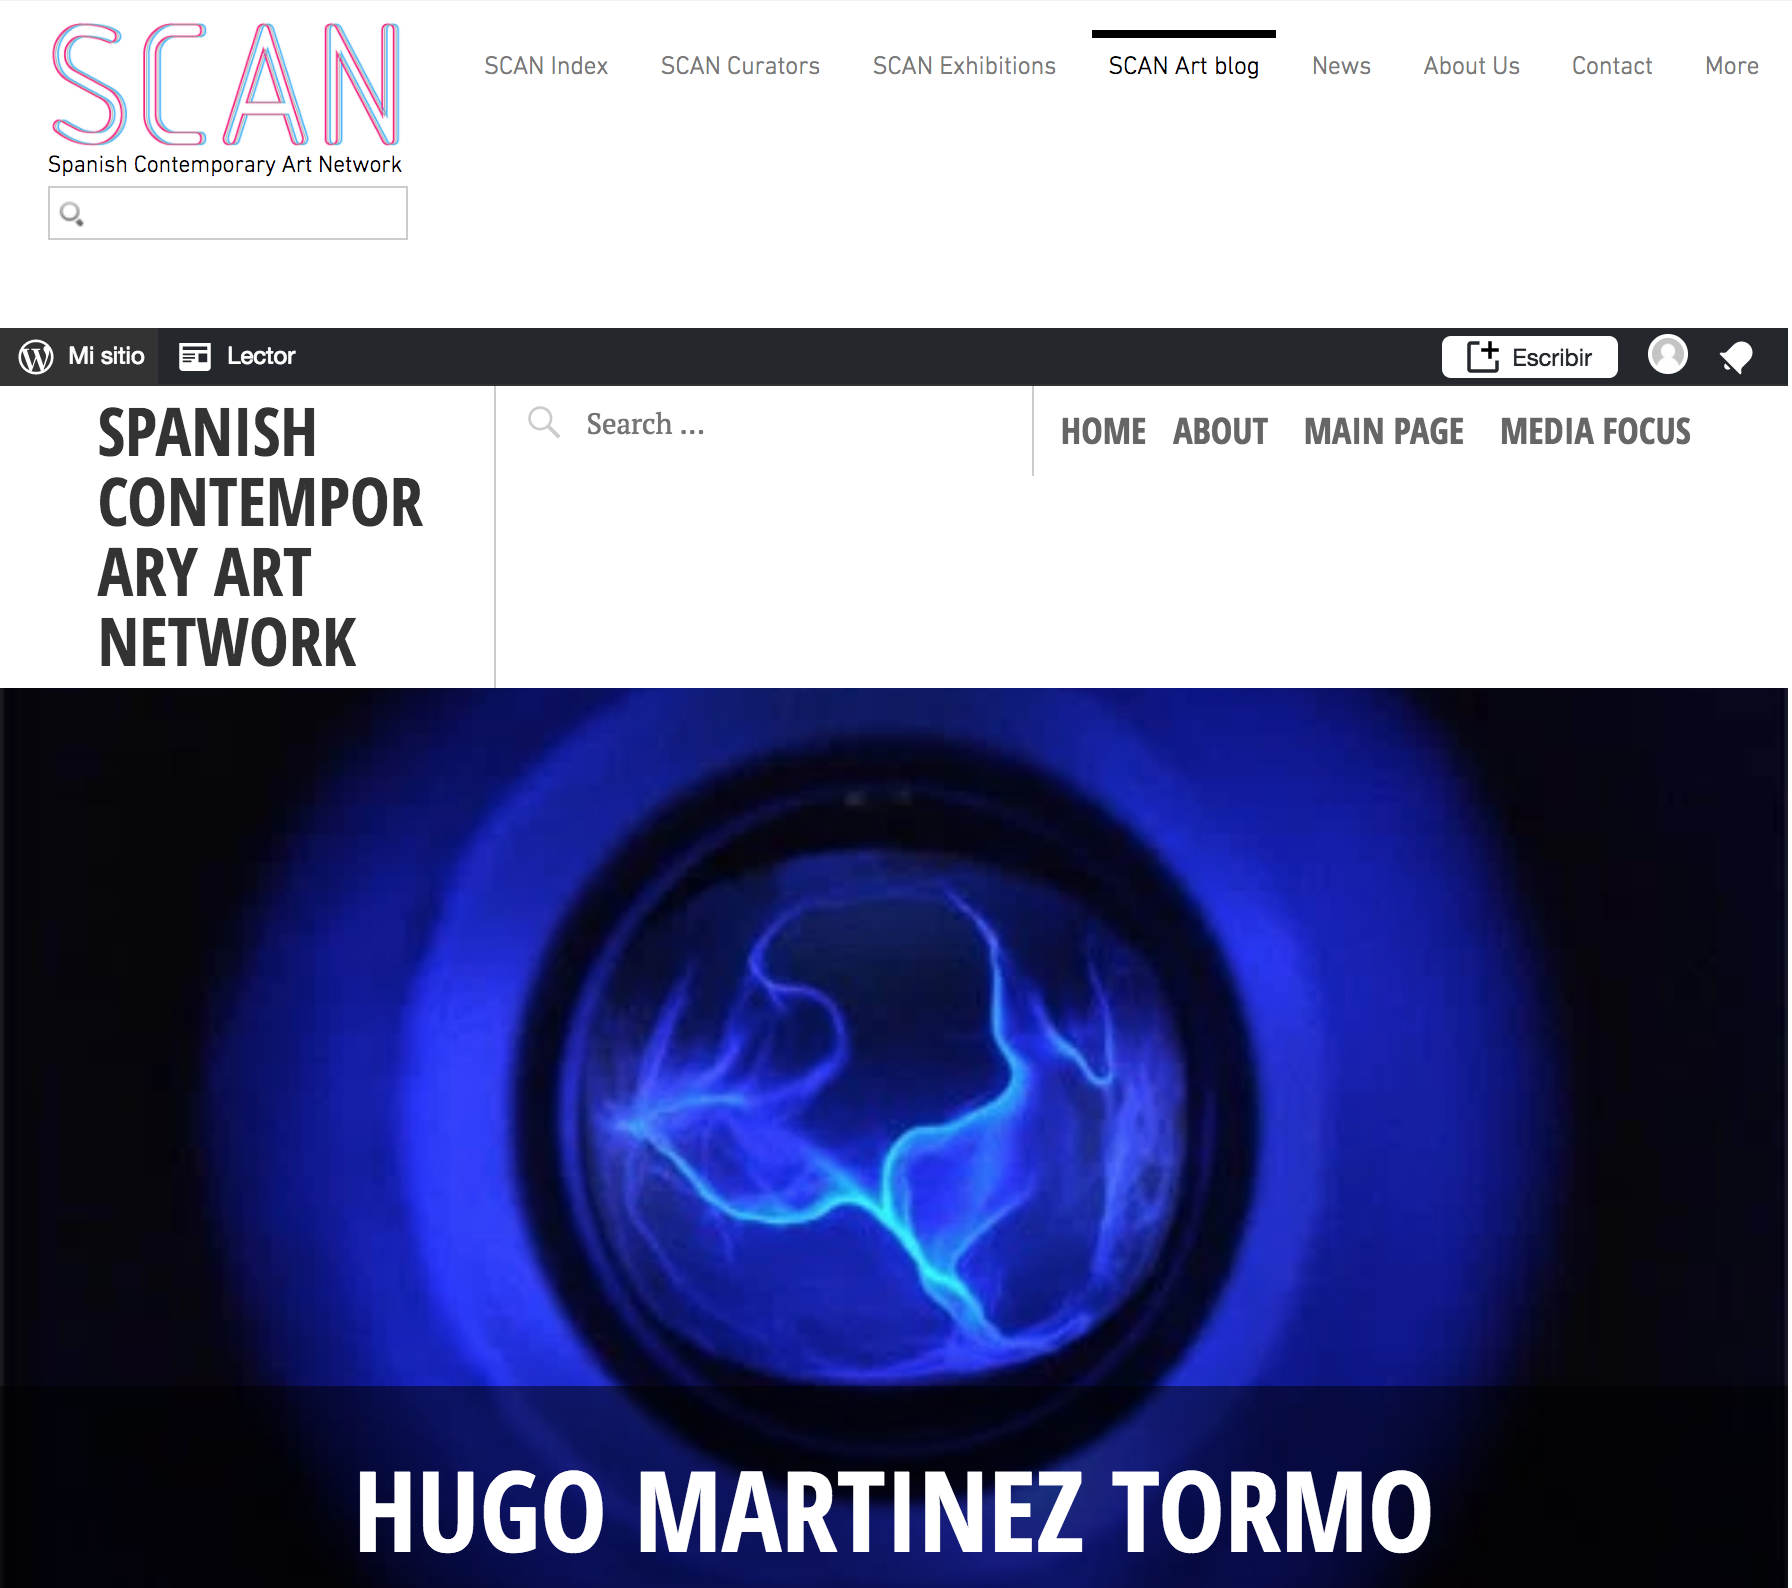 SCAN ARTE | noticia